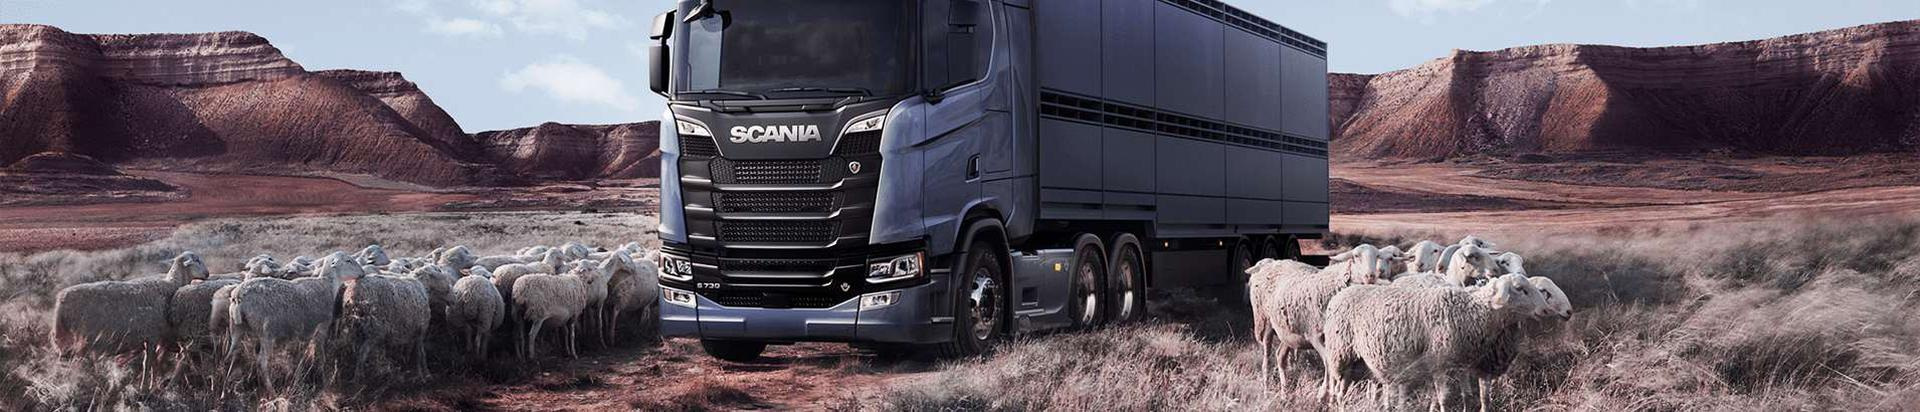 10238872_scania-eesti-as_27665868_xl.jpg